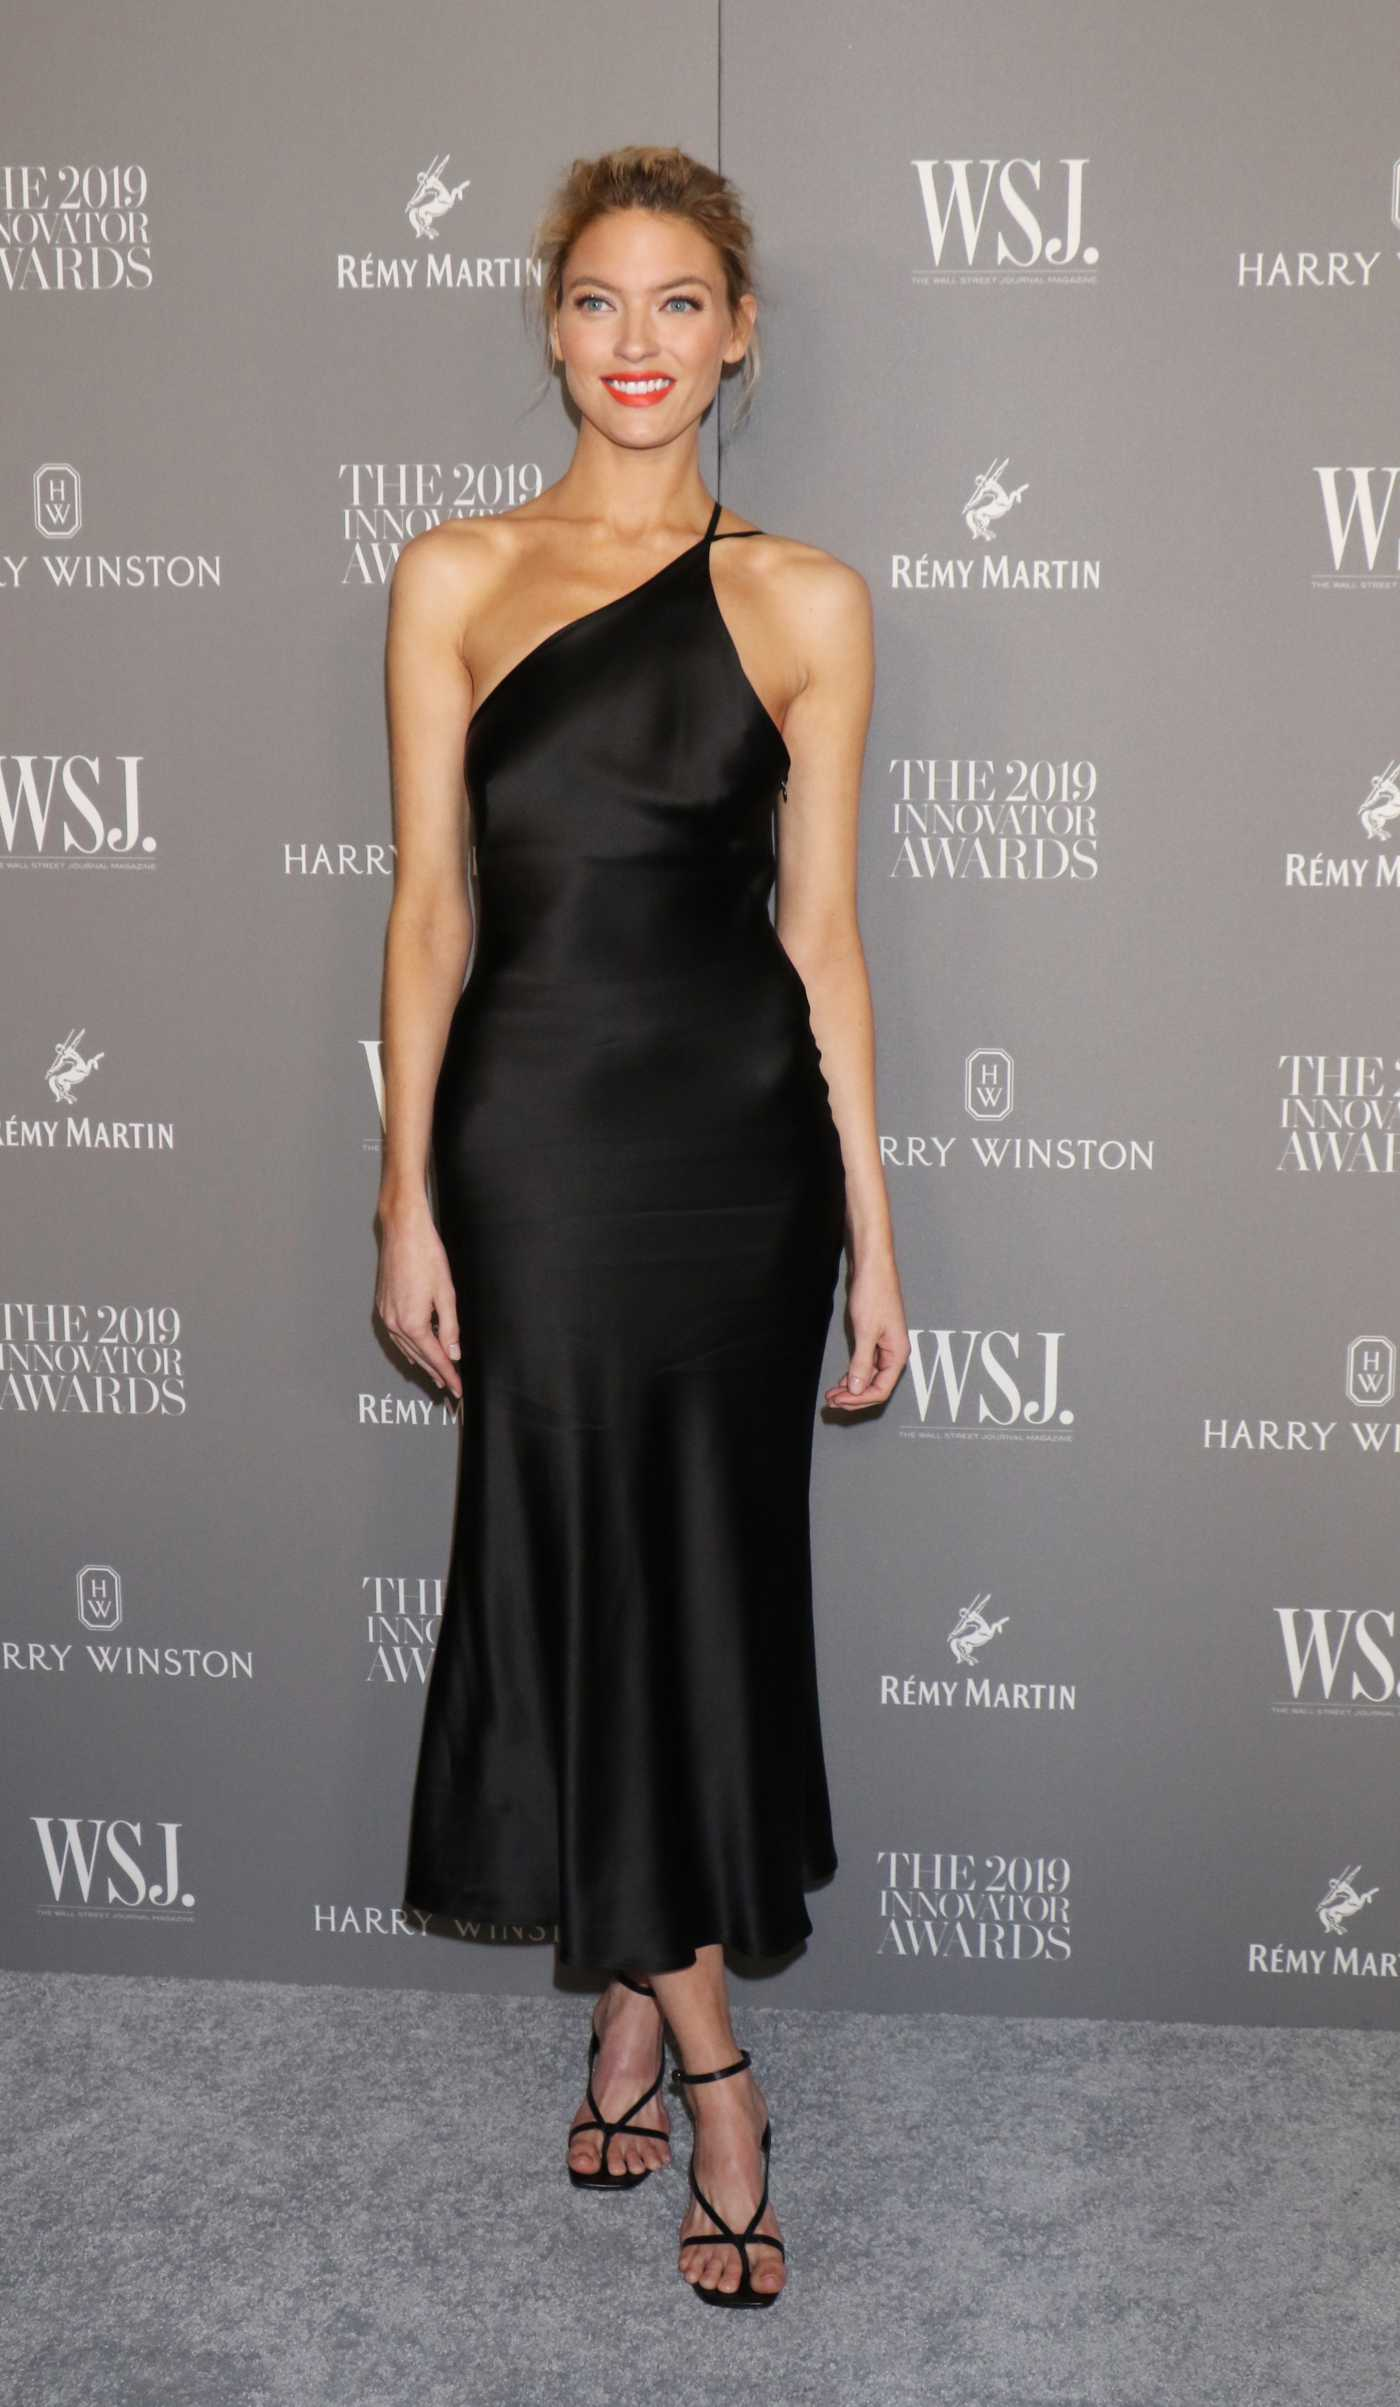 Martha Hunt Attends 2019 WSJ Innovators Awards Red Carpet at Moma in NY 11/06/2019